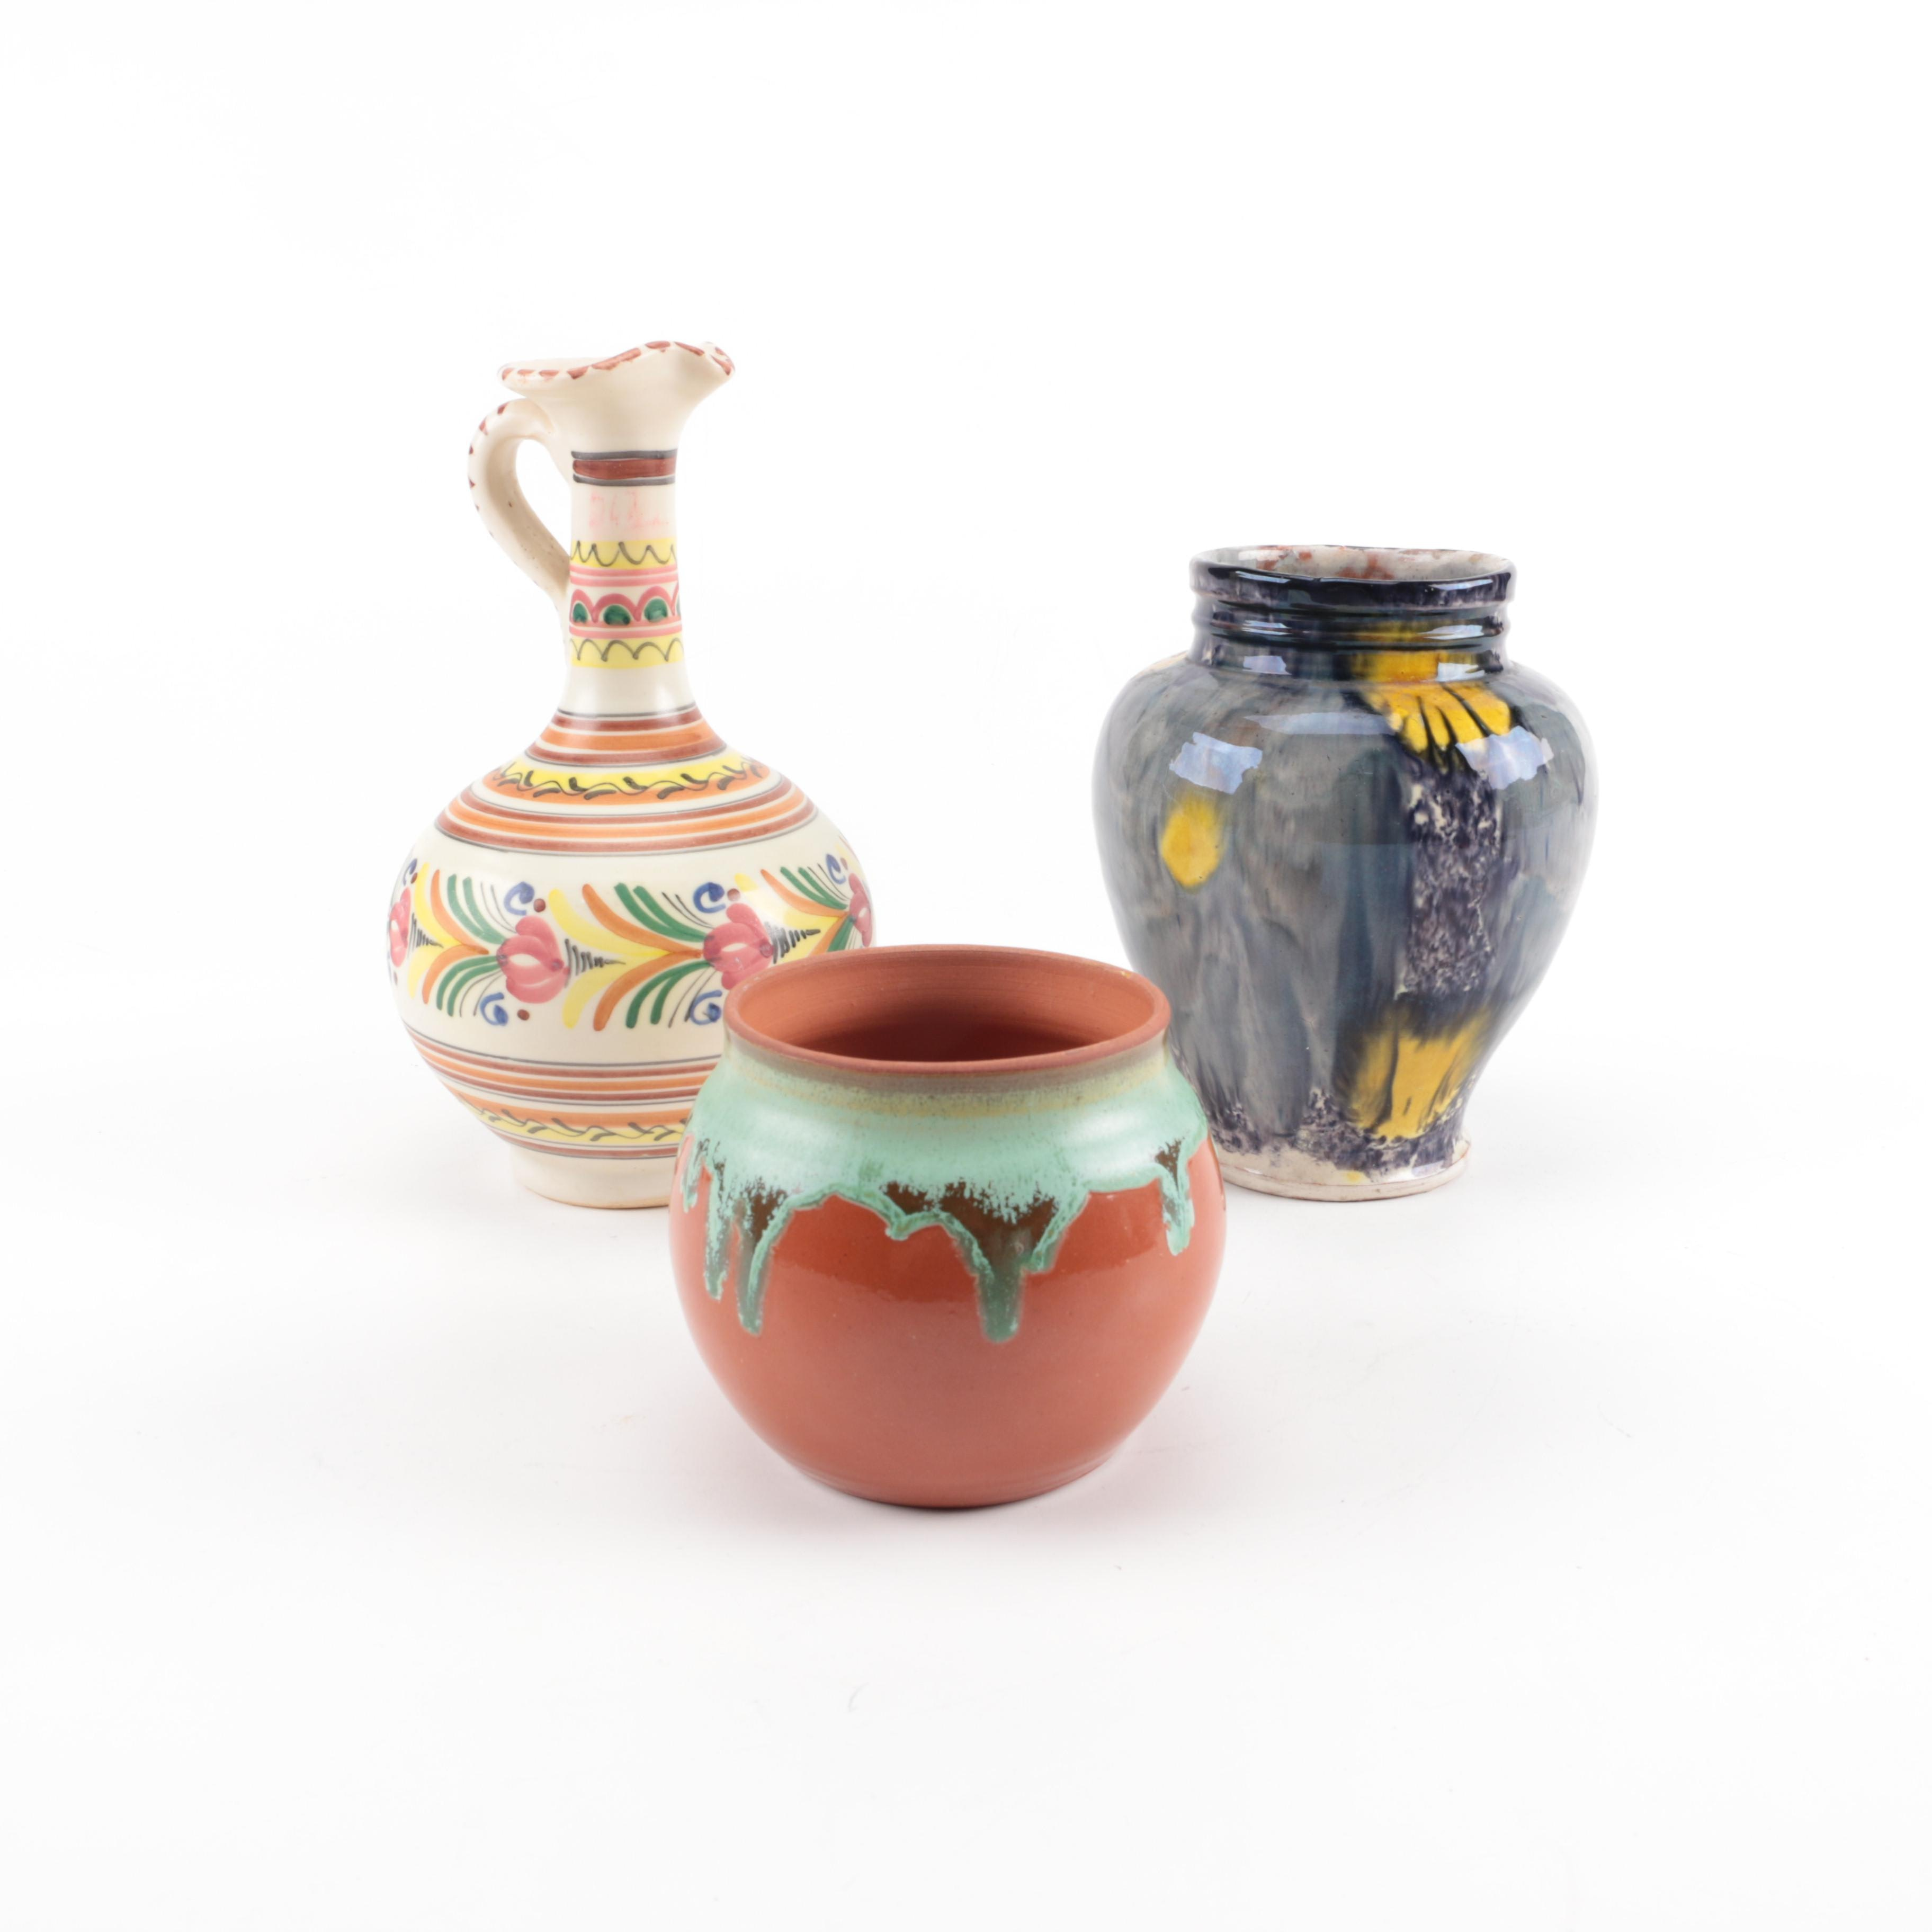 Hand Thrown Stoneware Vases and Pitcher